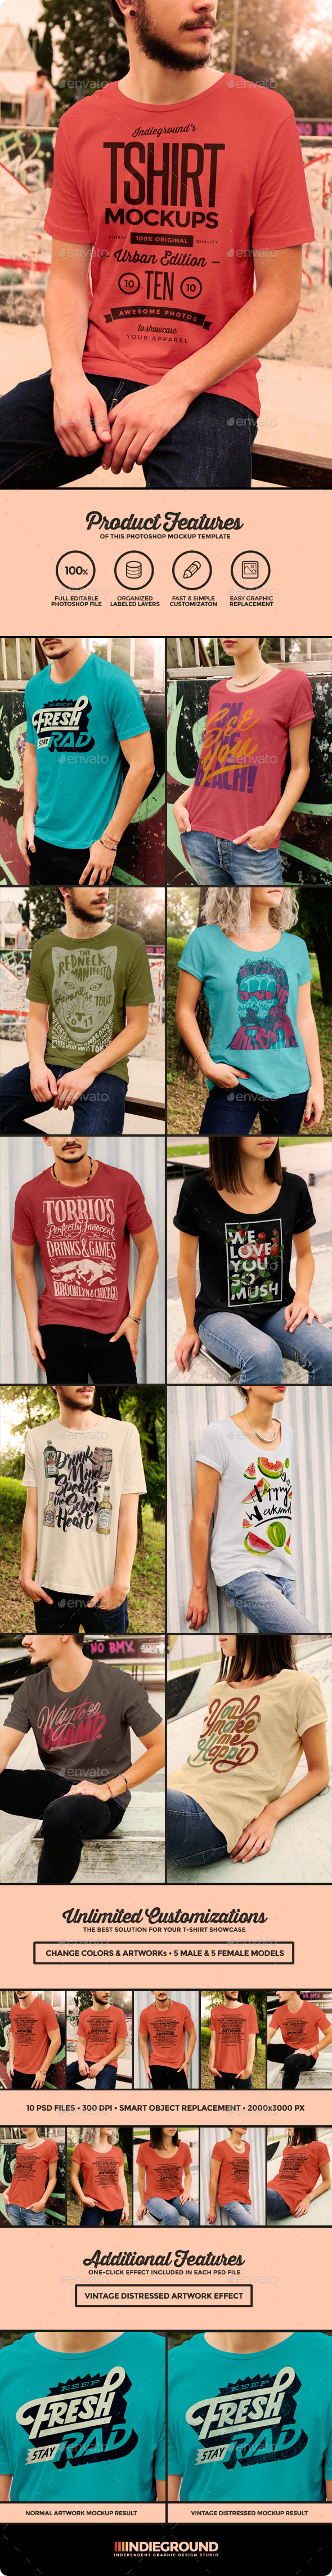 GraphicRiver Urban T-Shirt Mockups 10940969